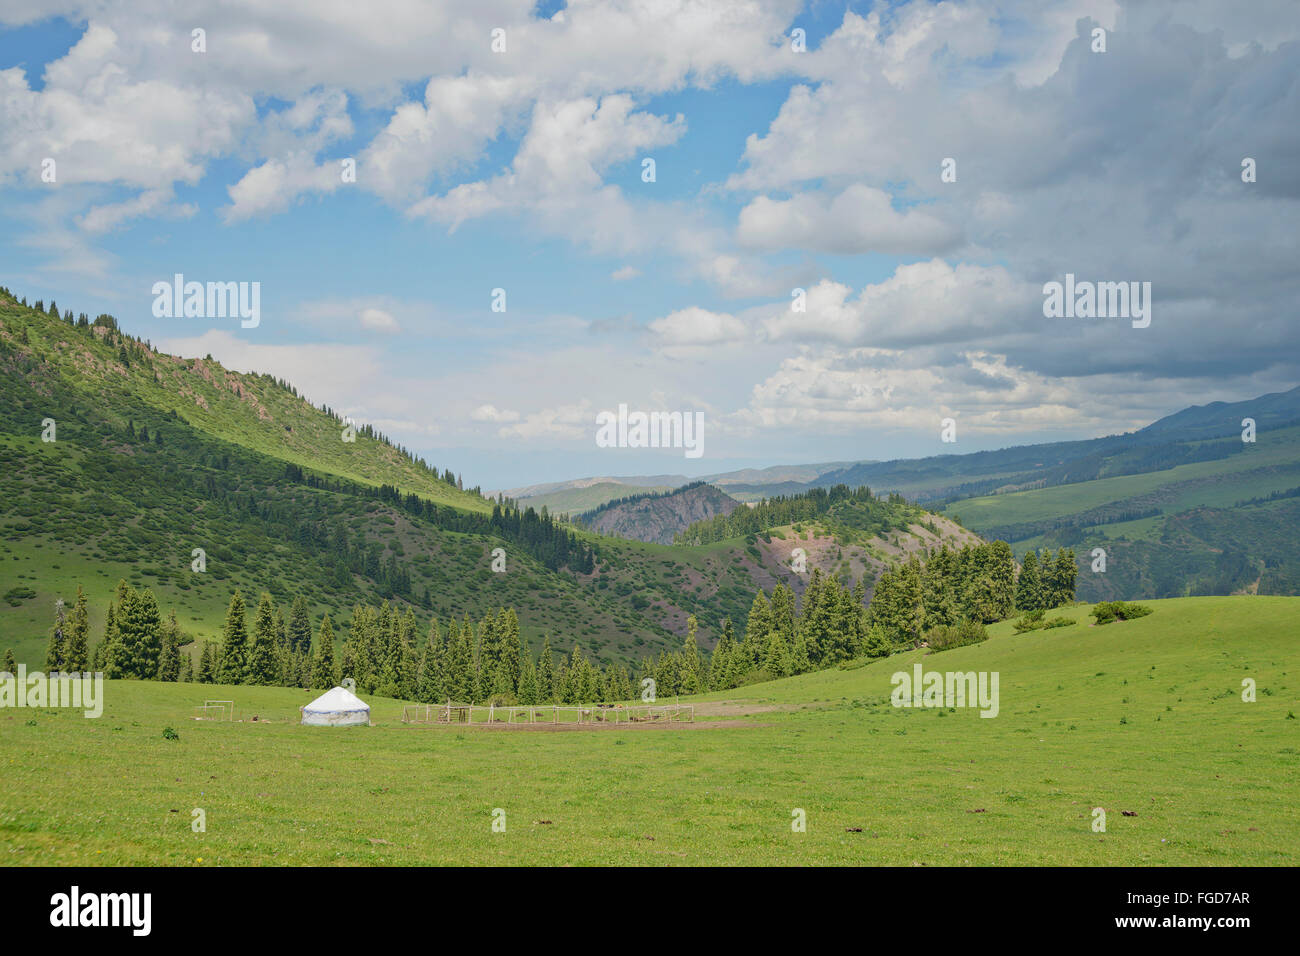 Yurt (a felted nomad tent) at summer pasture in Tian Shan mountain range, Kyrgyzstan. - Stock Image